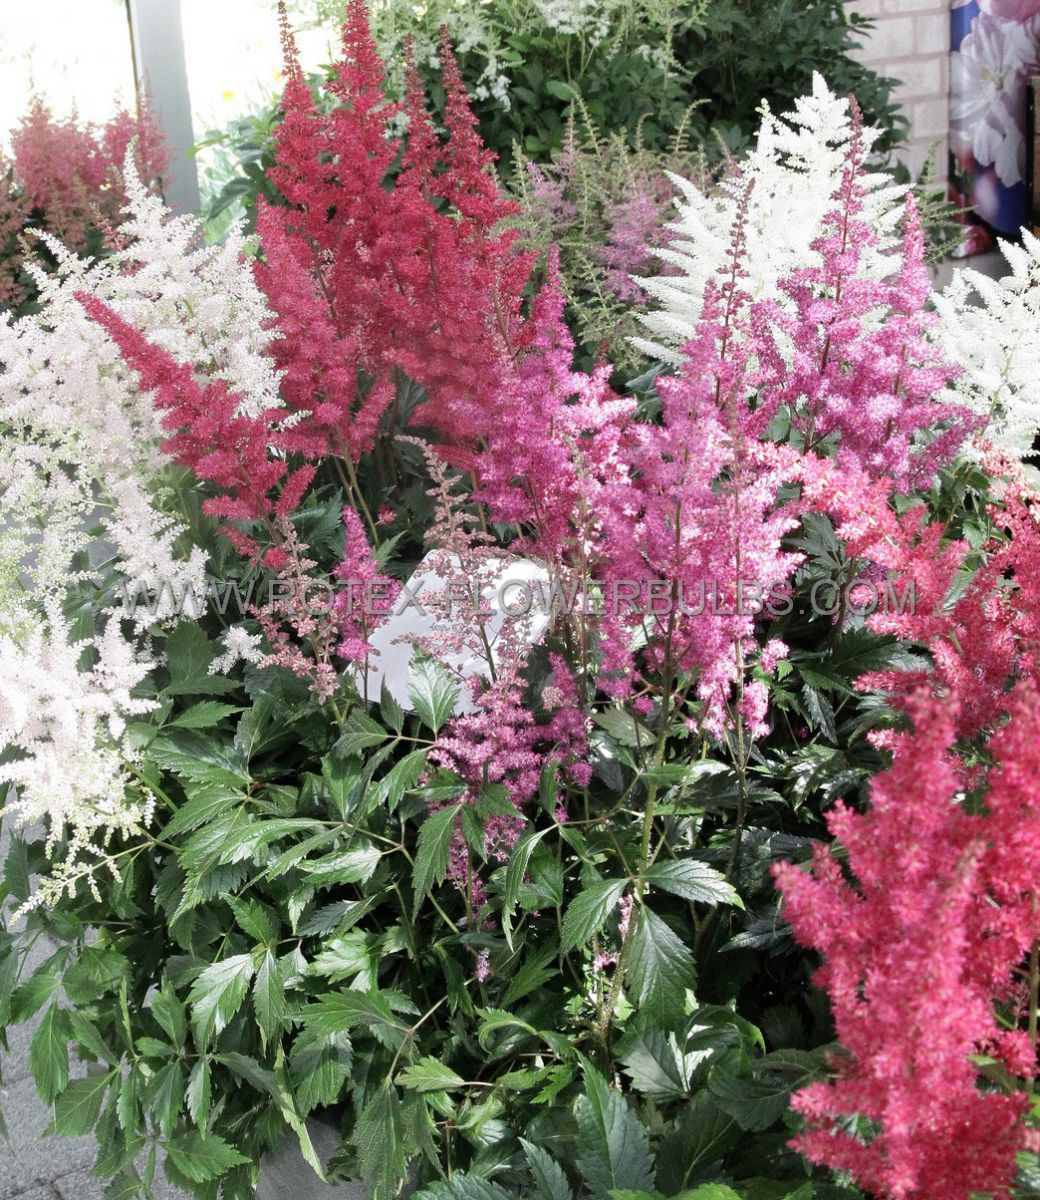 astilbe arendsii mix 23 eye 25 popen top box